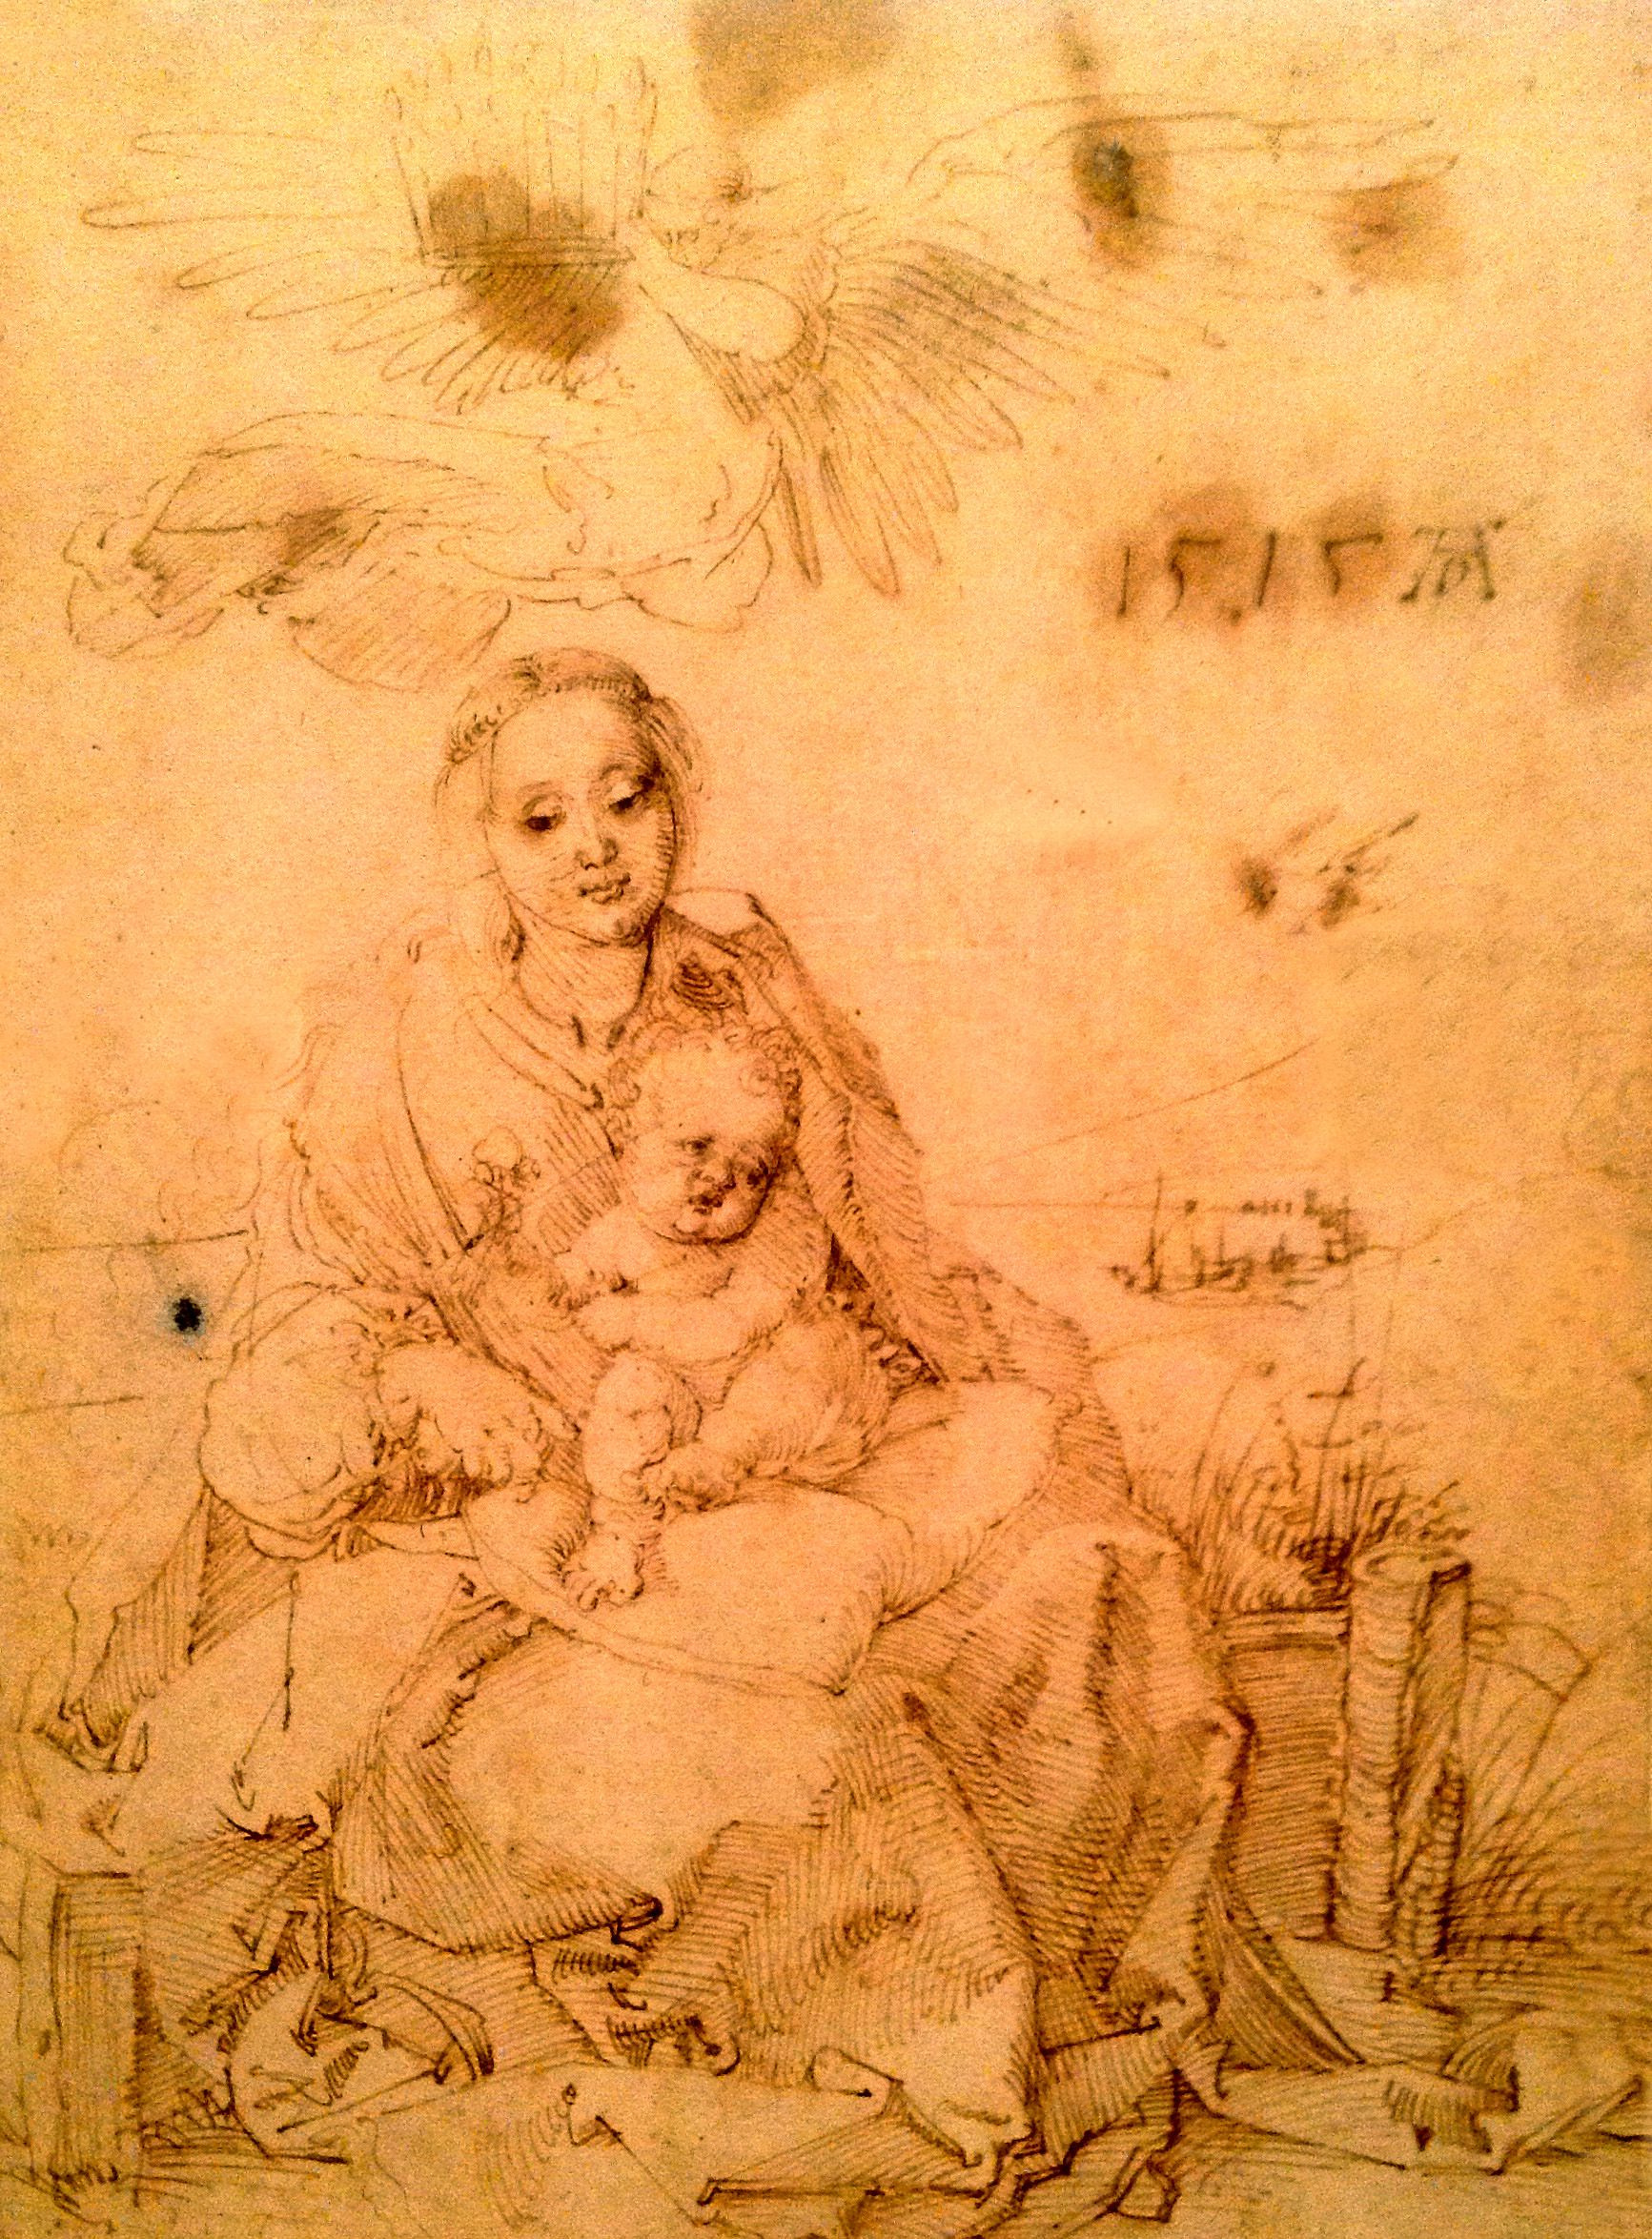 Kds Art Queen S Gallery London Pen Drawing By Albrecht Durer The Virgin Child Crowned By An Angel 1515 Albrecht Durer Art Pen Drawing